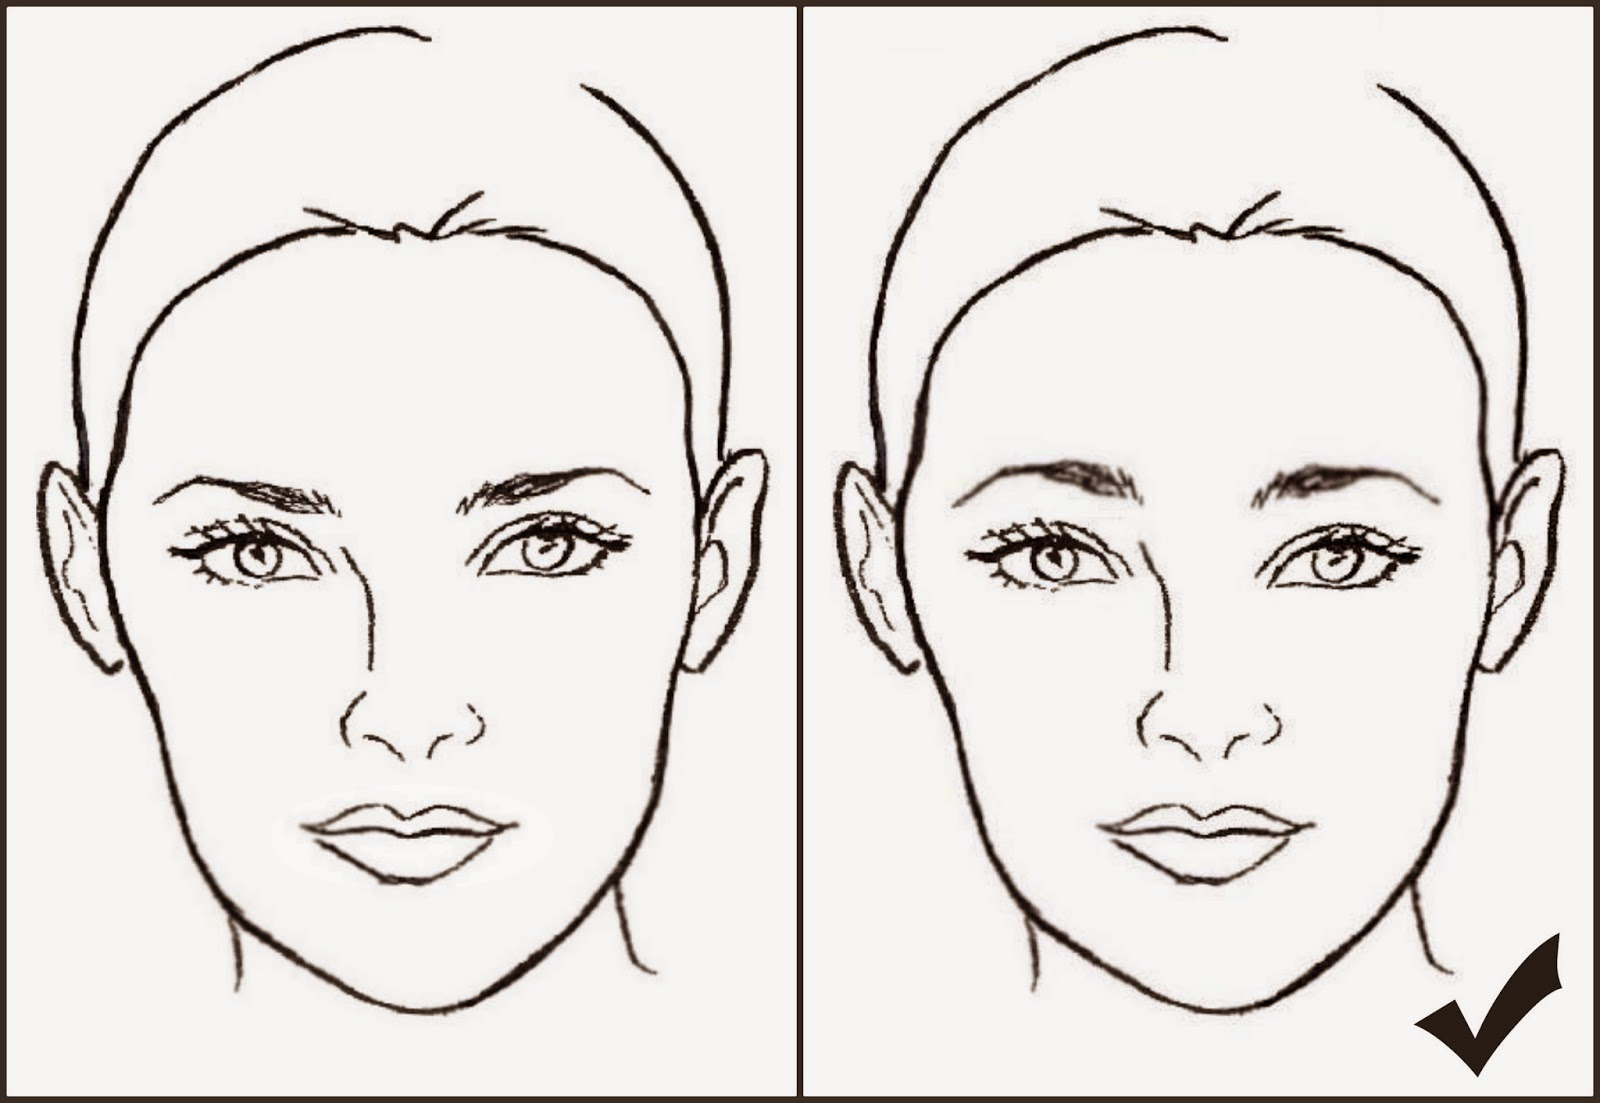 Tips for Makeup and Beauty: Face Shapes and Eyebrows